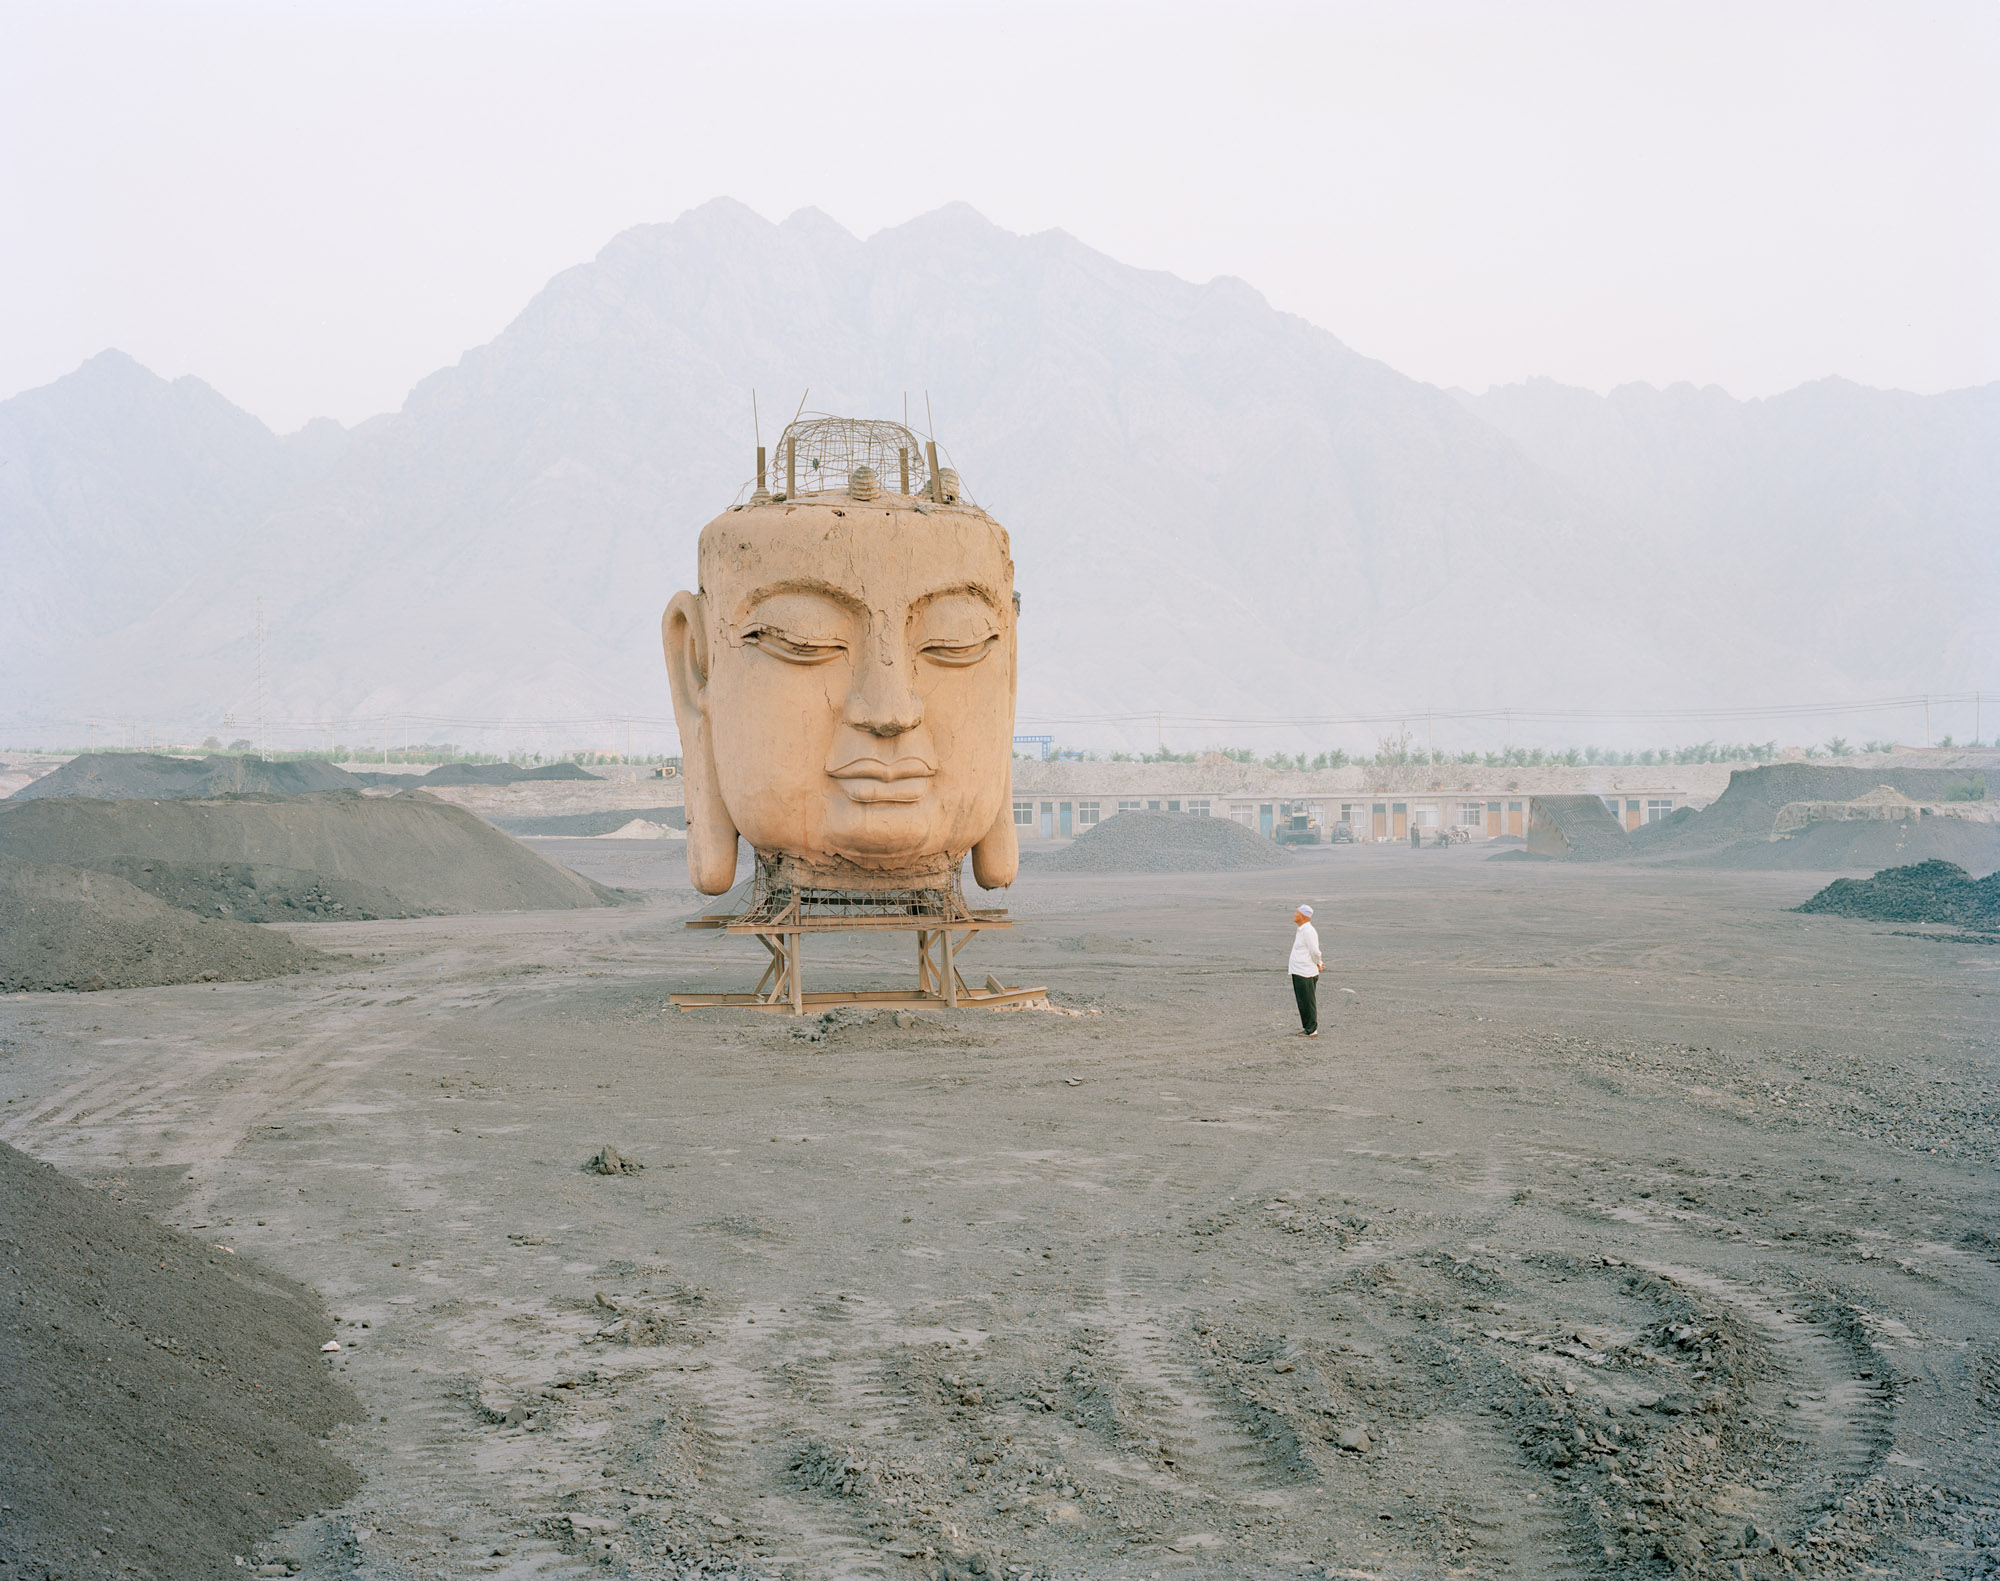 A giant Buddha's face in coal yard, Ningxia province.